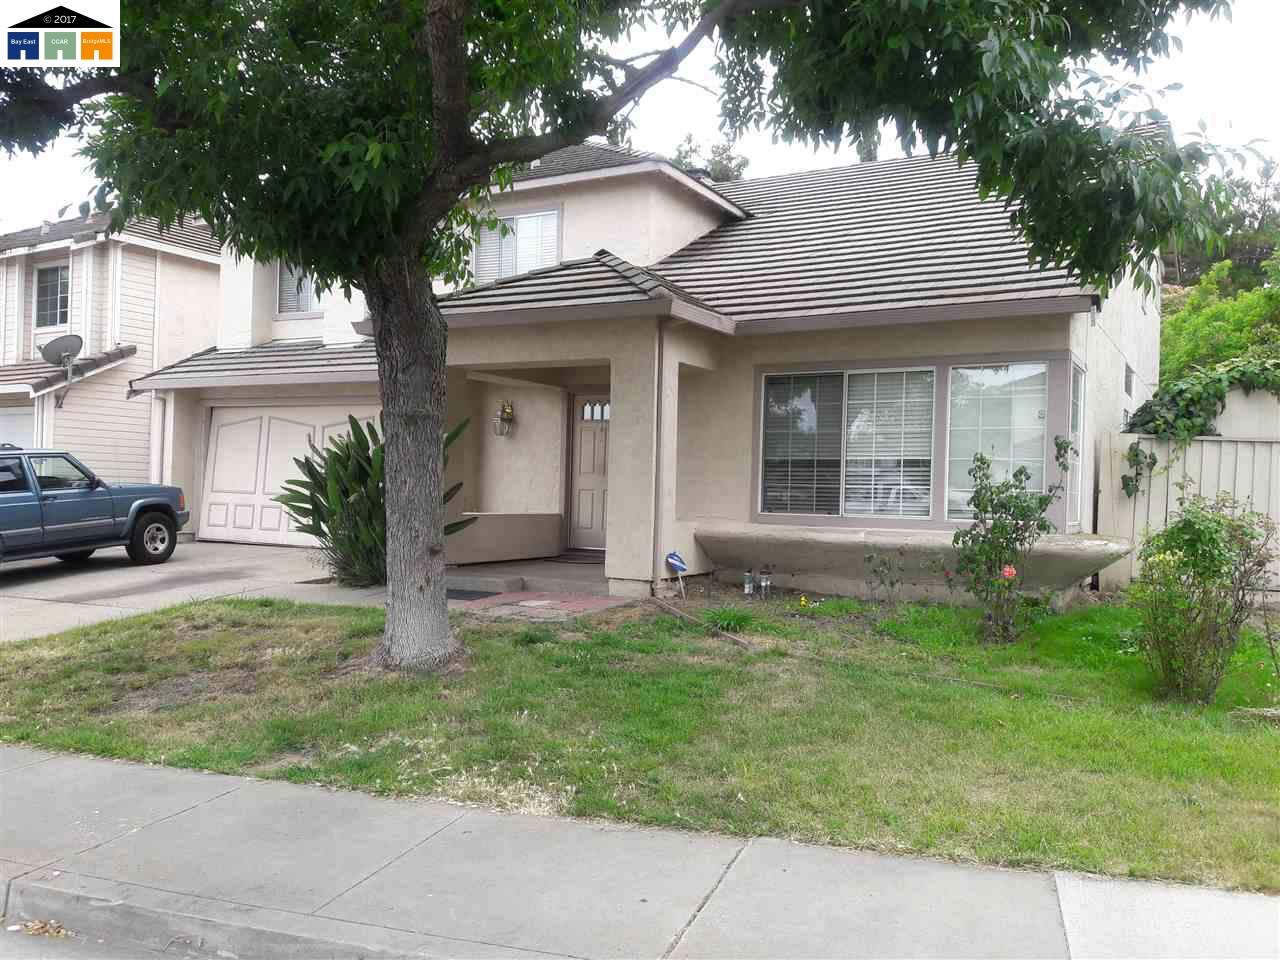 Additional photo for property listing at 4900 Ridgeview Drive  Antioch, California 94531 United States